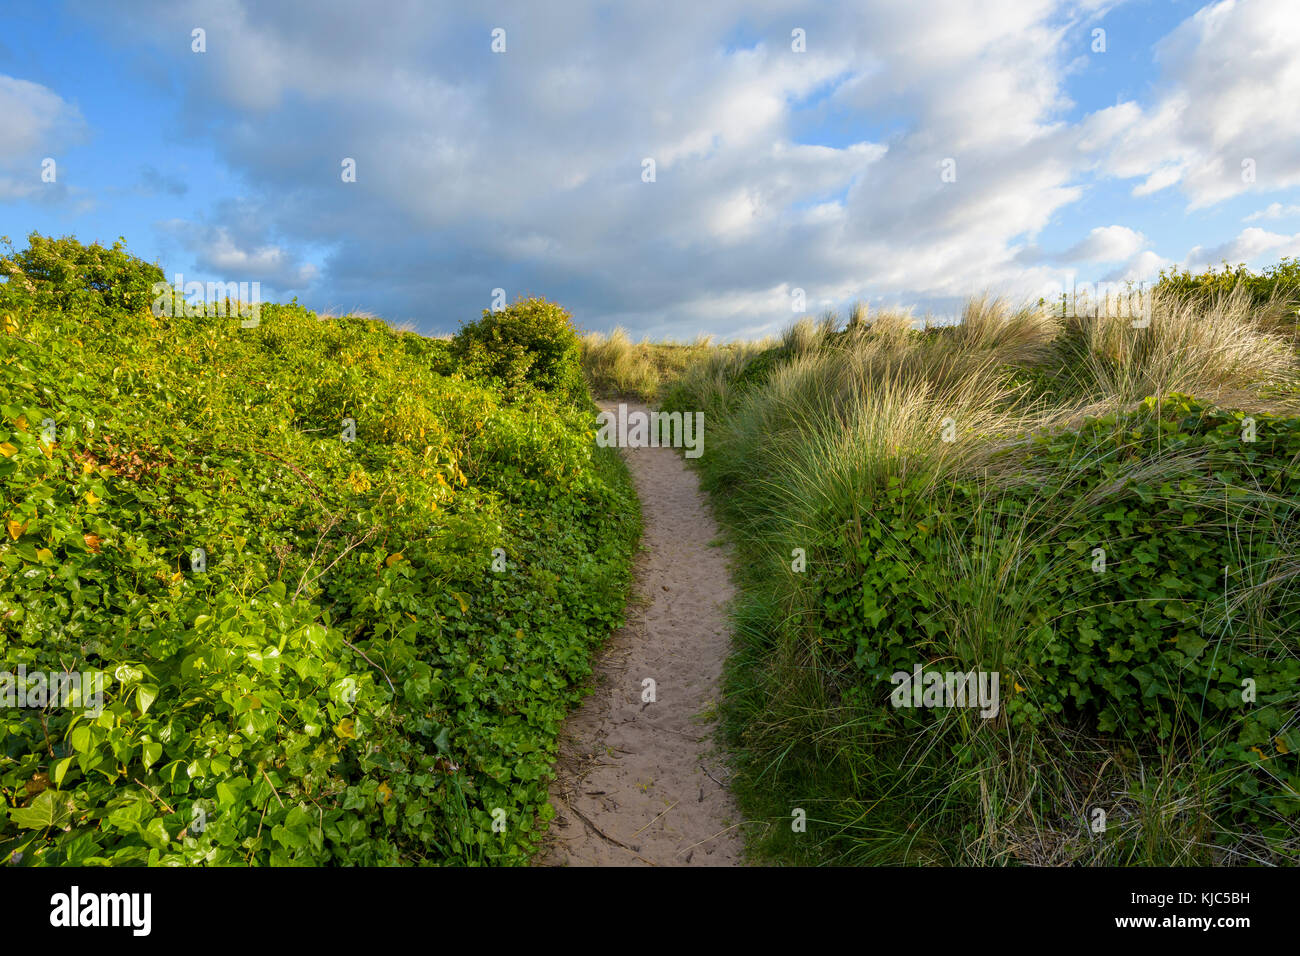 Pathway lined with ivy plants next to the sand dunes at Bamburgh in Northumberland, England, United Kingdom - Stock Image